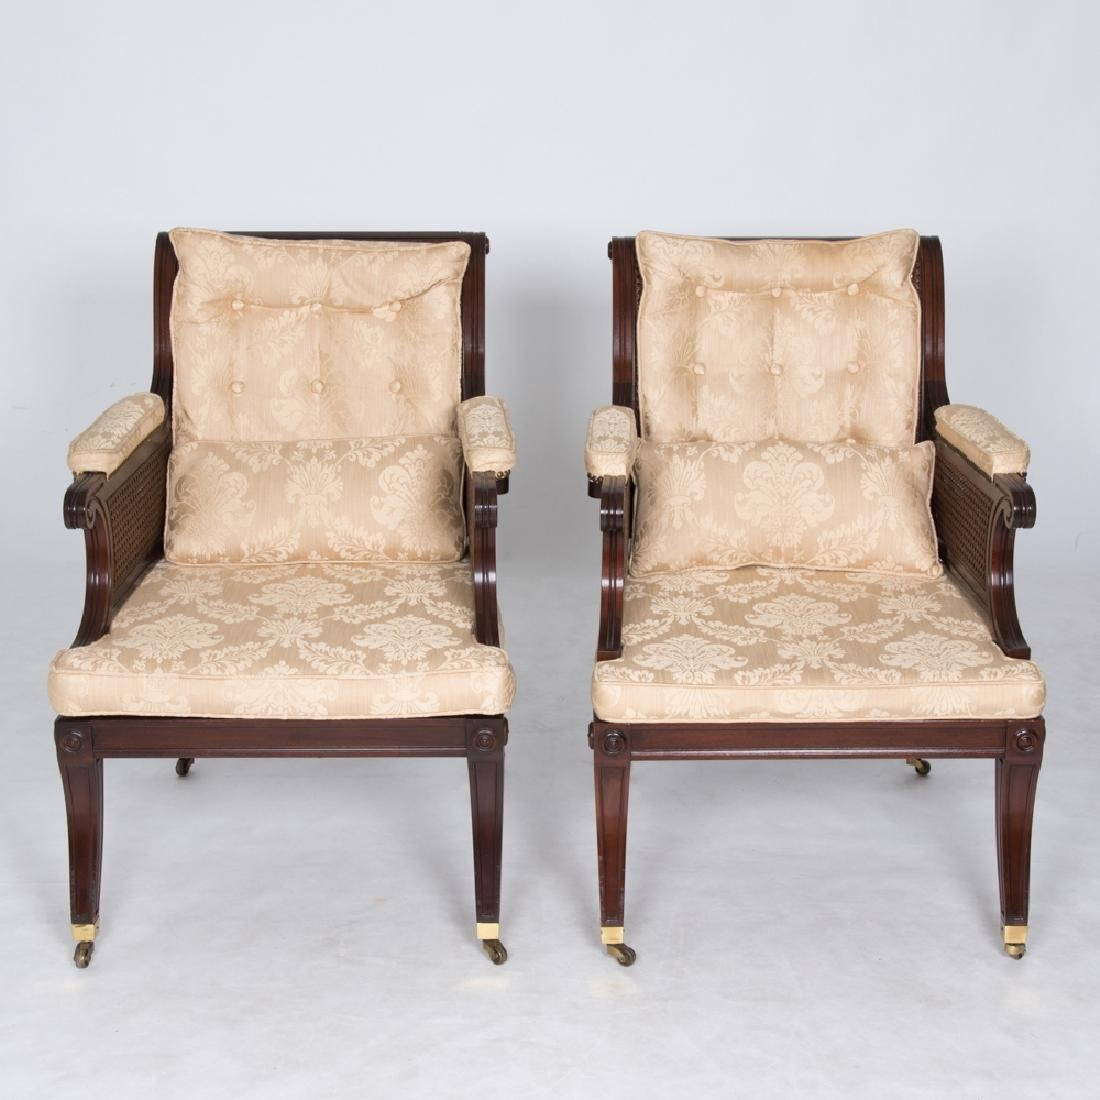 A Pair of Baker Furniture Georgian Style Mahogany and